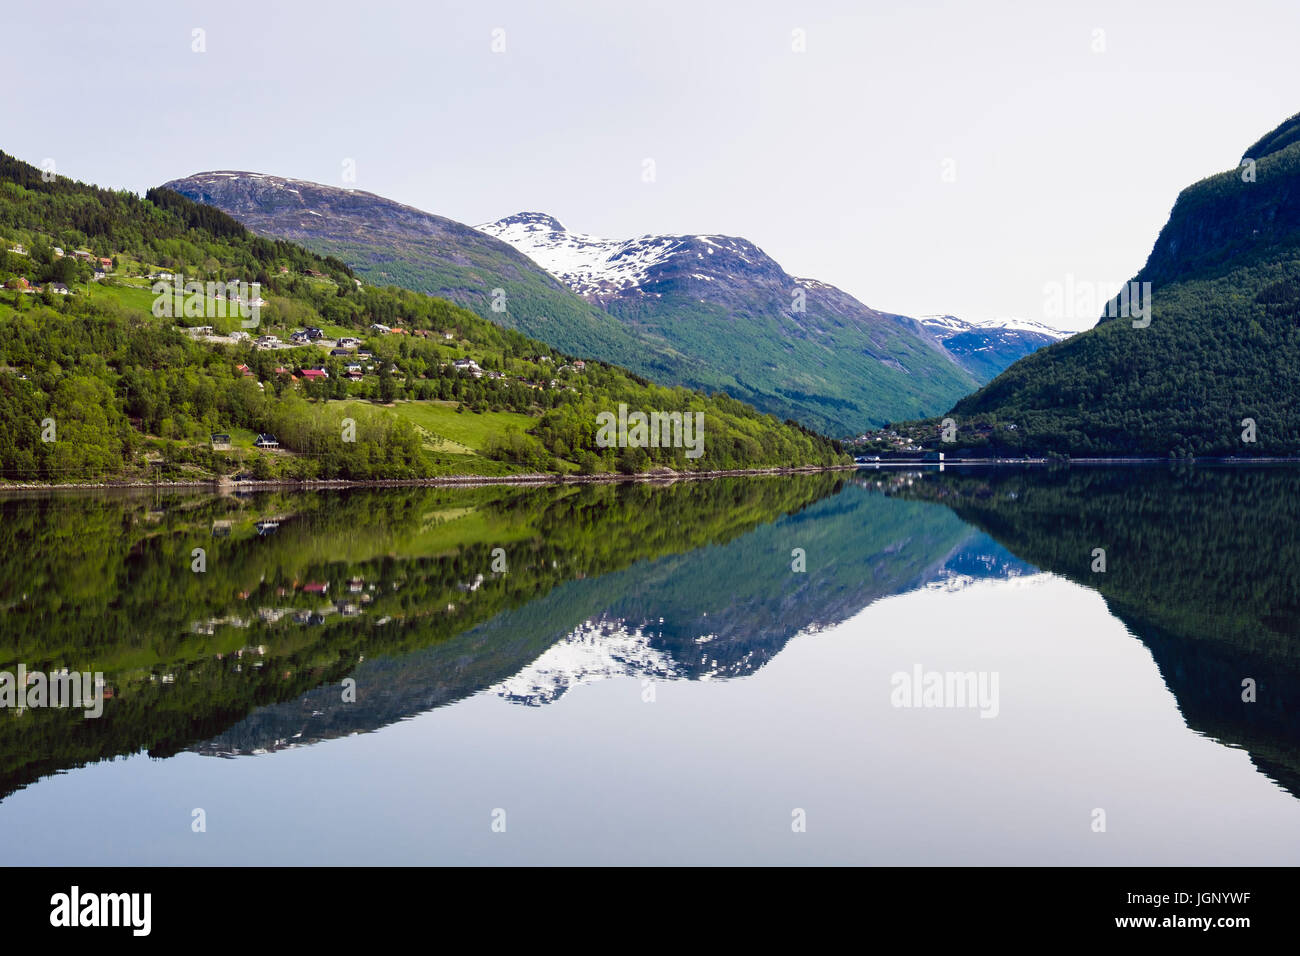 Reflections in calm waters of Nordfjorden Fjord on Norwegian west coast near Olden, Sogn og Fjordane county, Norway, Stock Photo